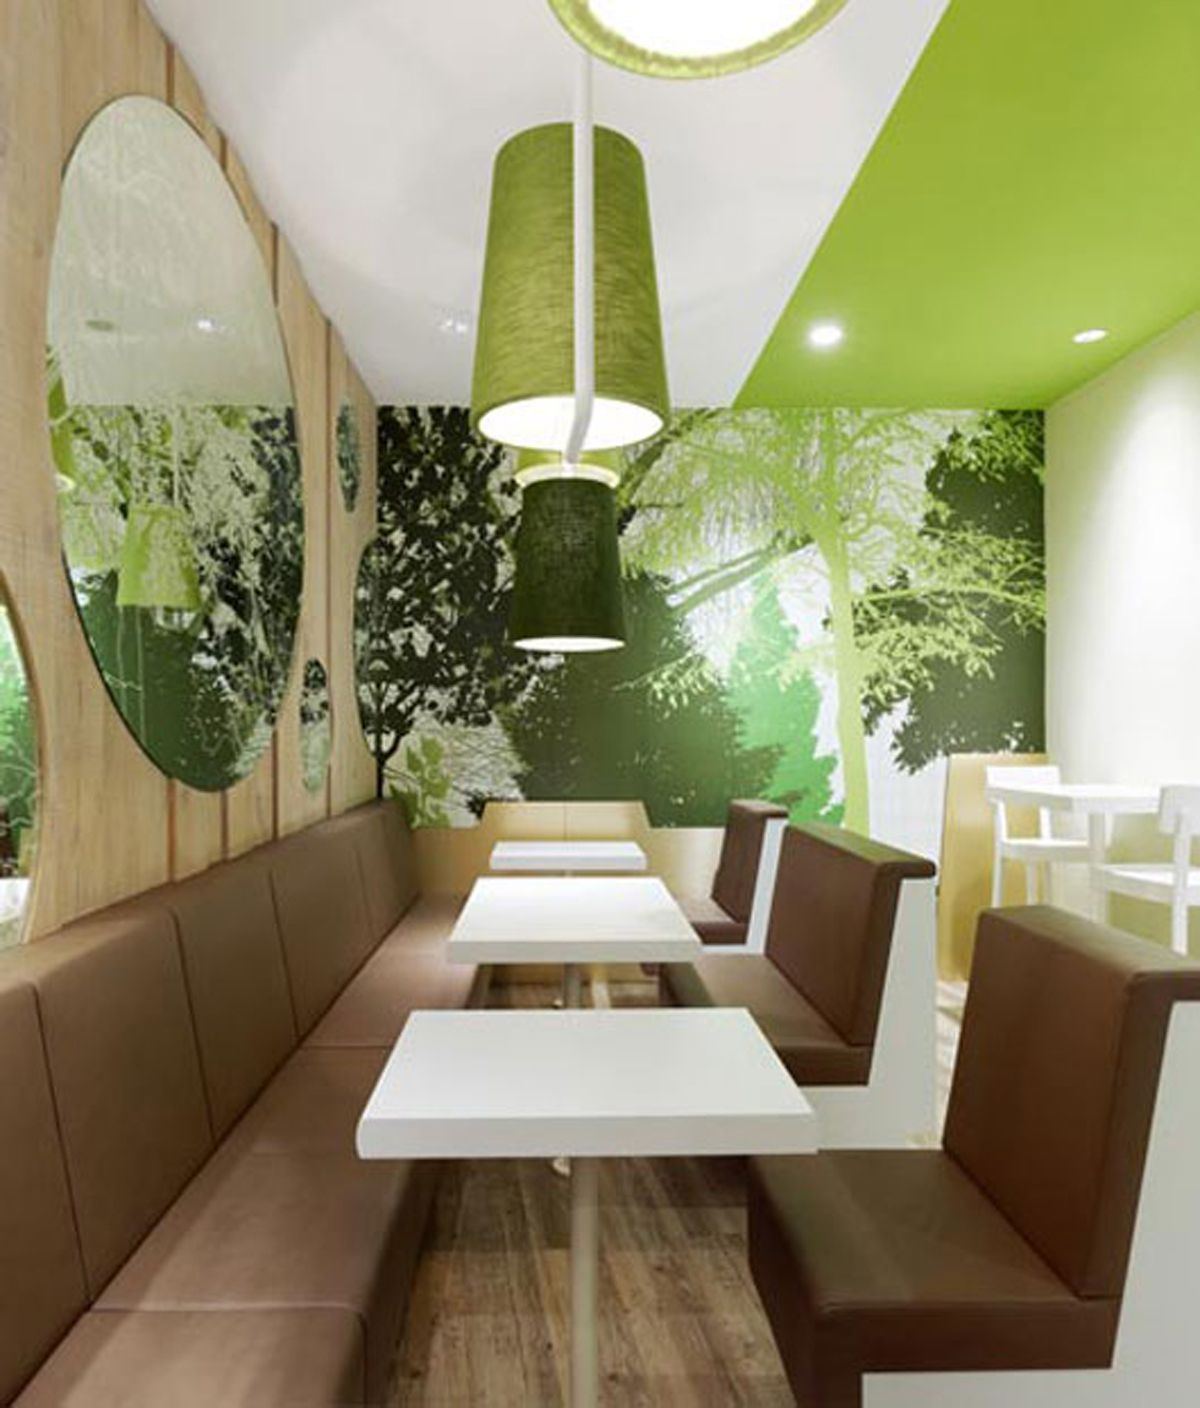 German Design Firm Ippolito Fleitz Group Has Designed The Interiors Of Wienerwald A Fast Food Chicken Restaurant In Munich Germany By Incorporating Tree